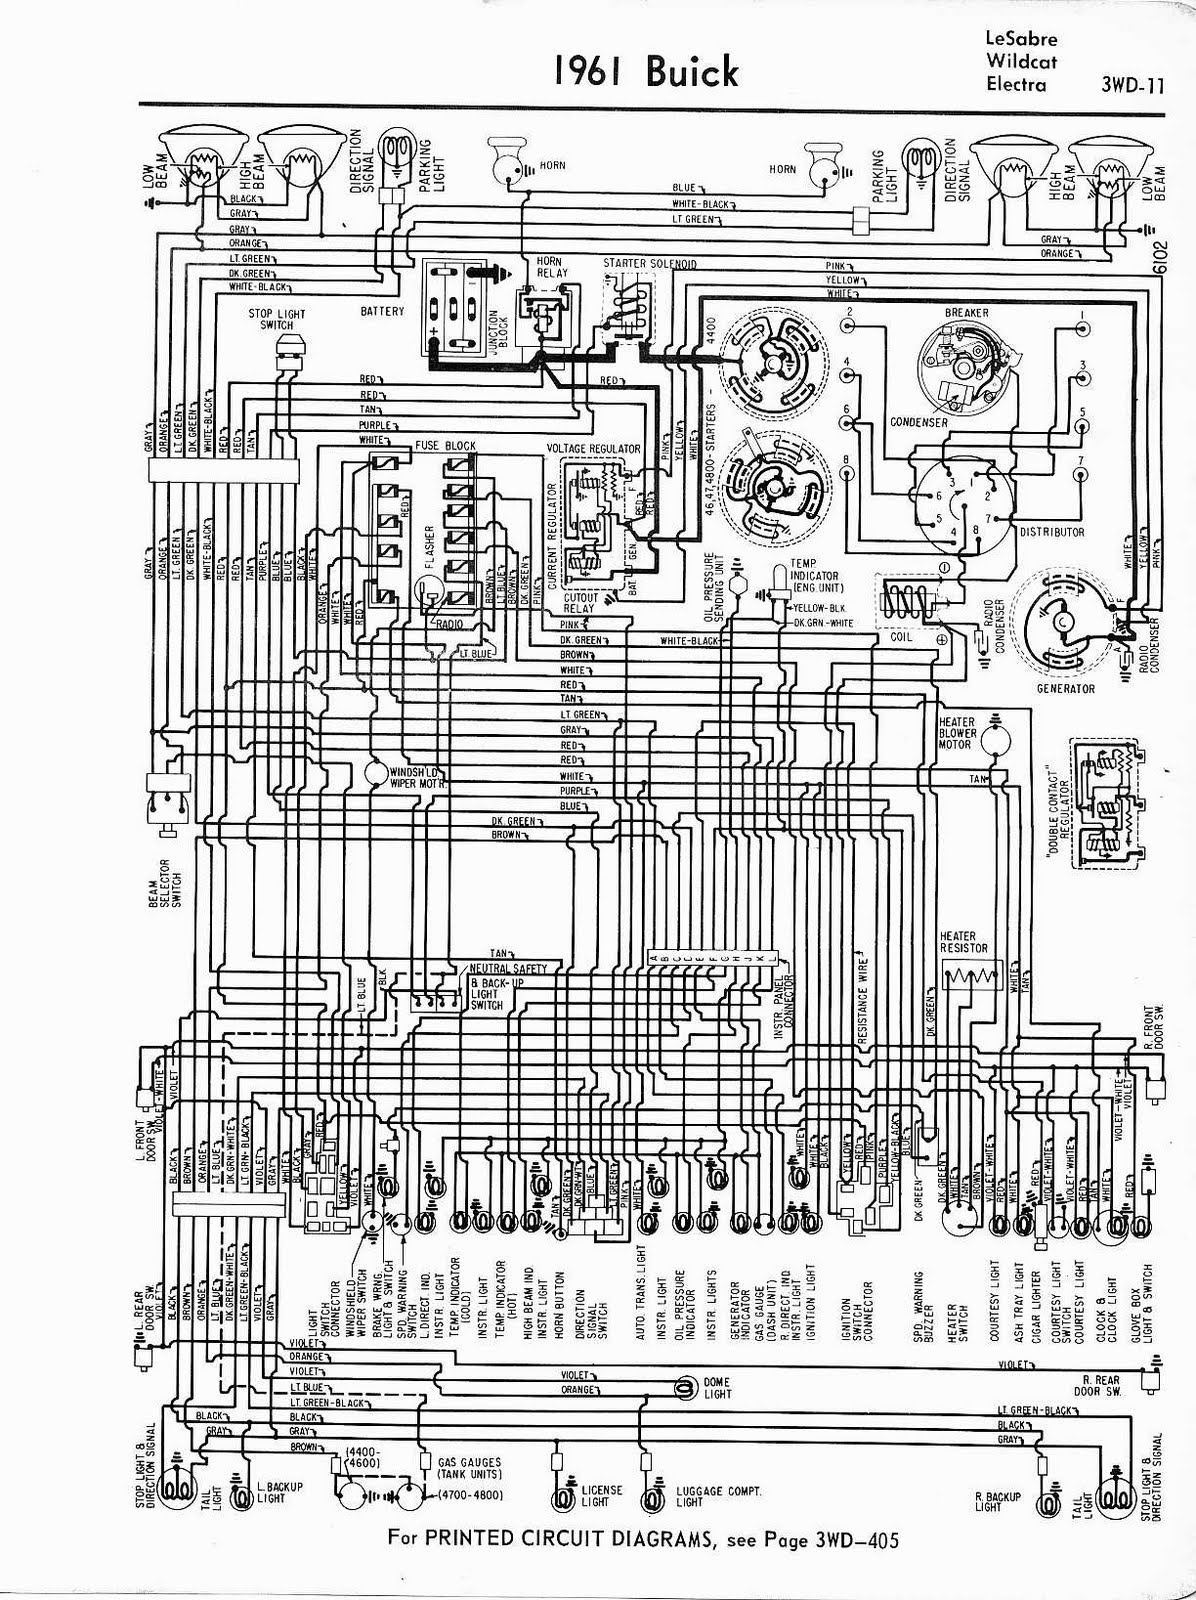 1966 Buick Wildcat Wiring Diagram 4 Wire Ultrasonic Level Transmitter Free Auto April 2011